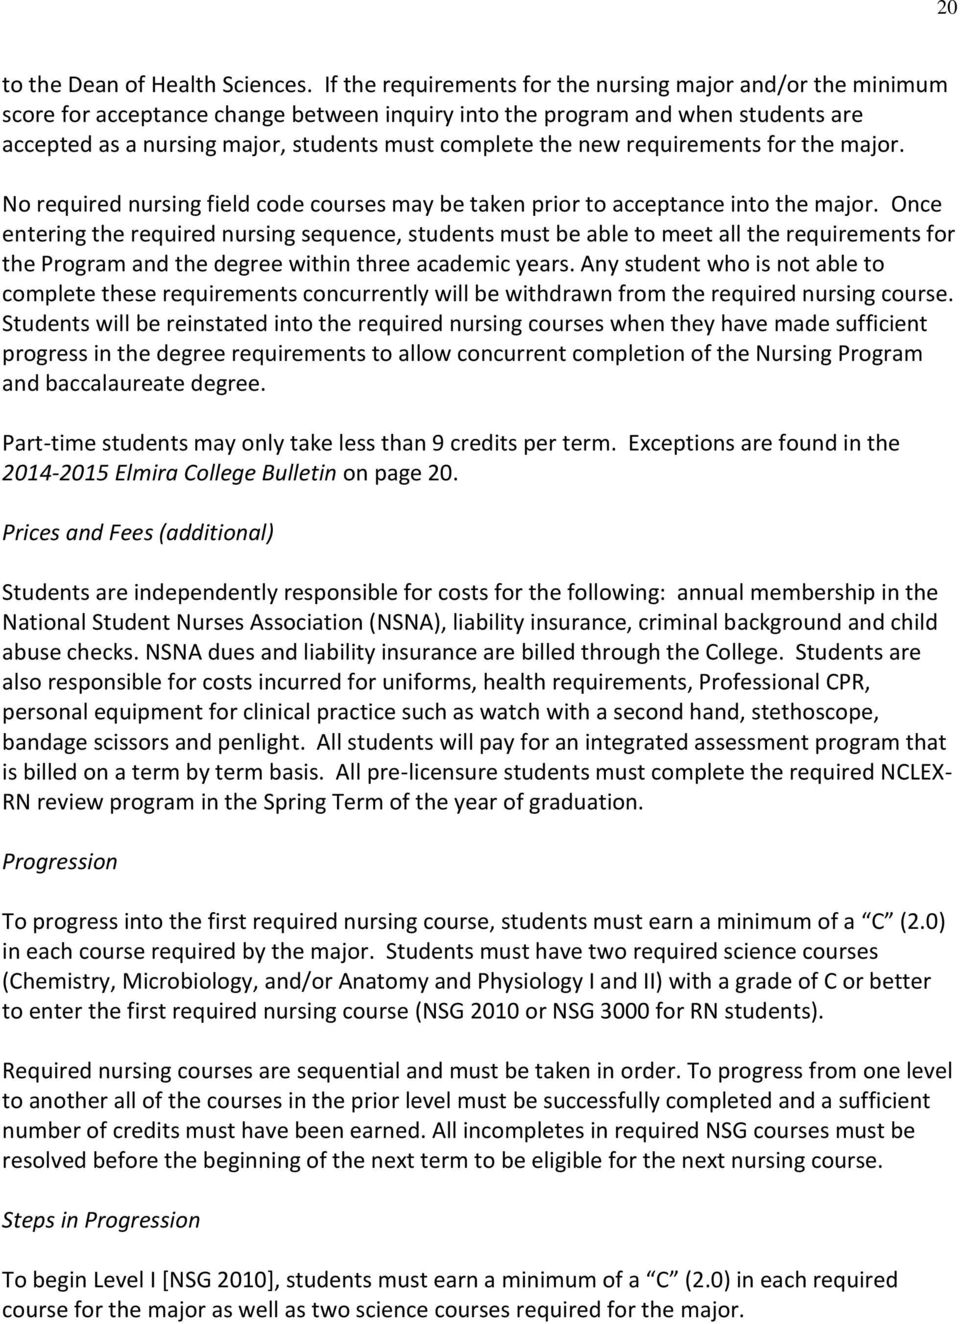 new requirements for the major. No required nursing field code courses may be taken prior to acceptance into the major.